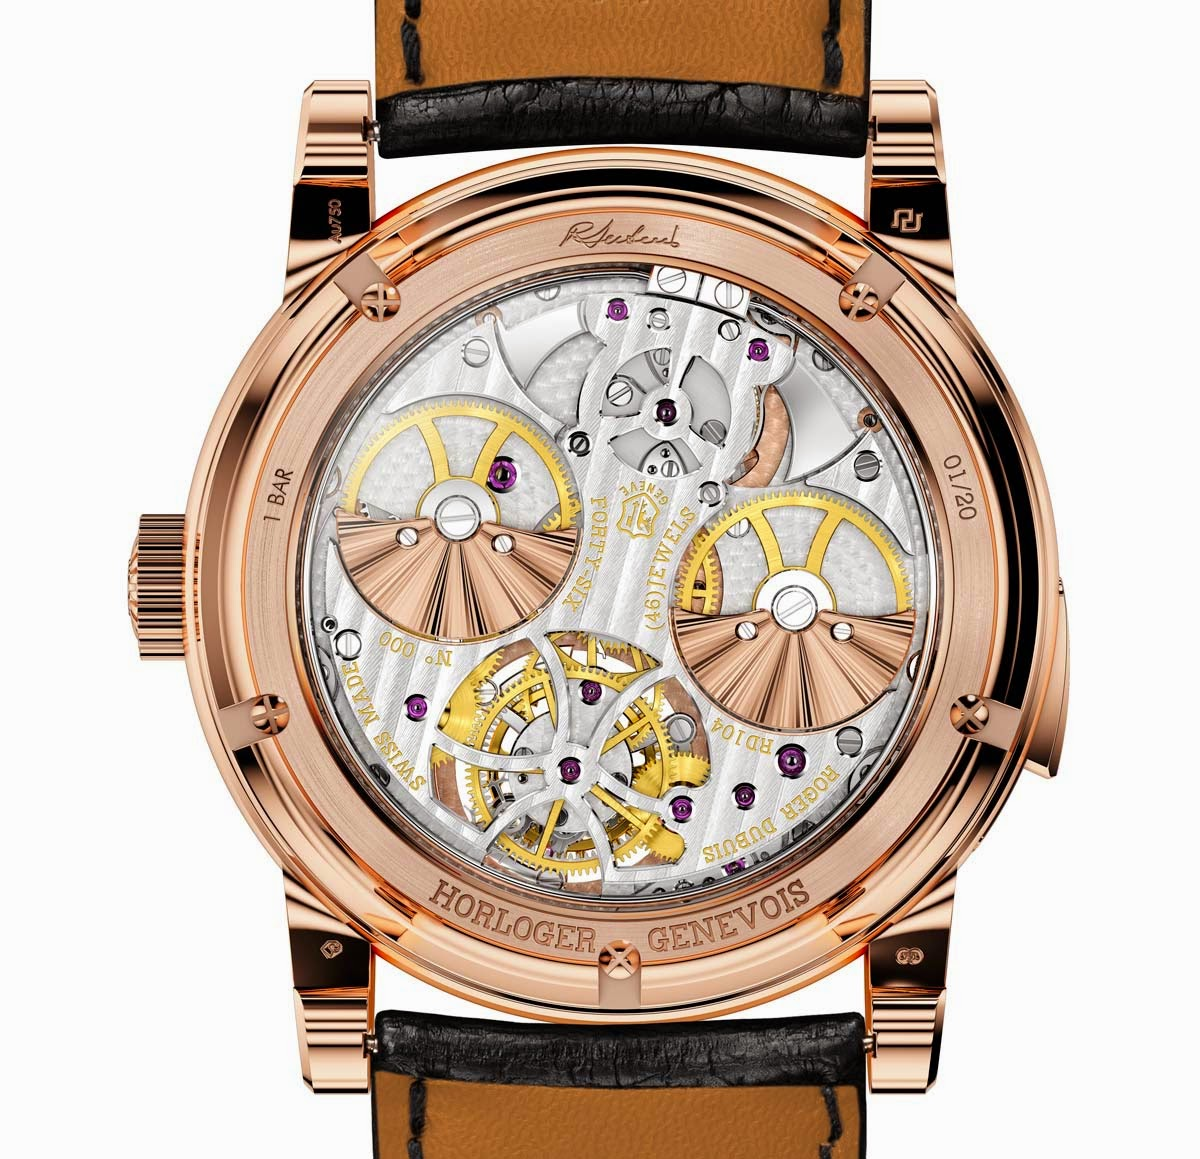 Roger Dubuis Minute Repeater Tourbillon Automatic - Caseback